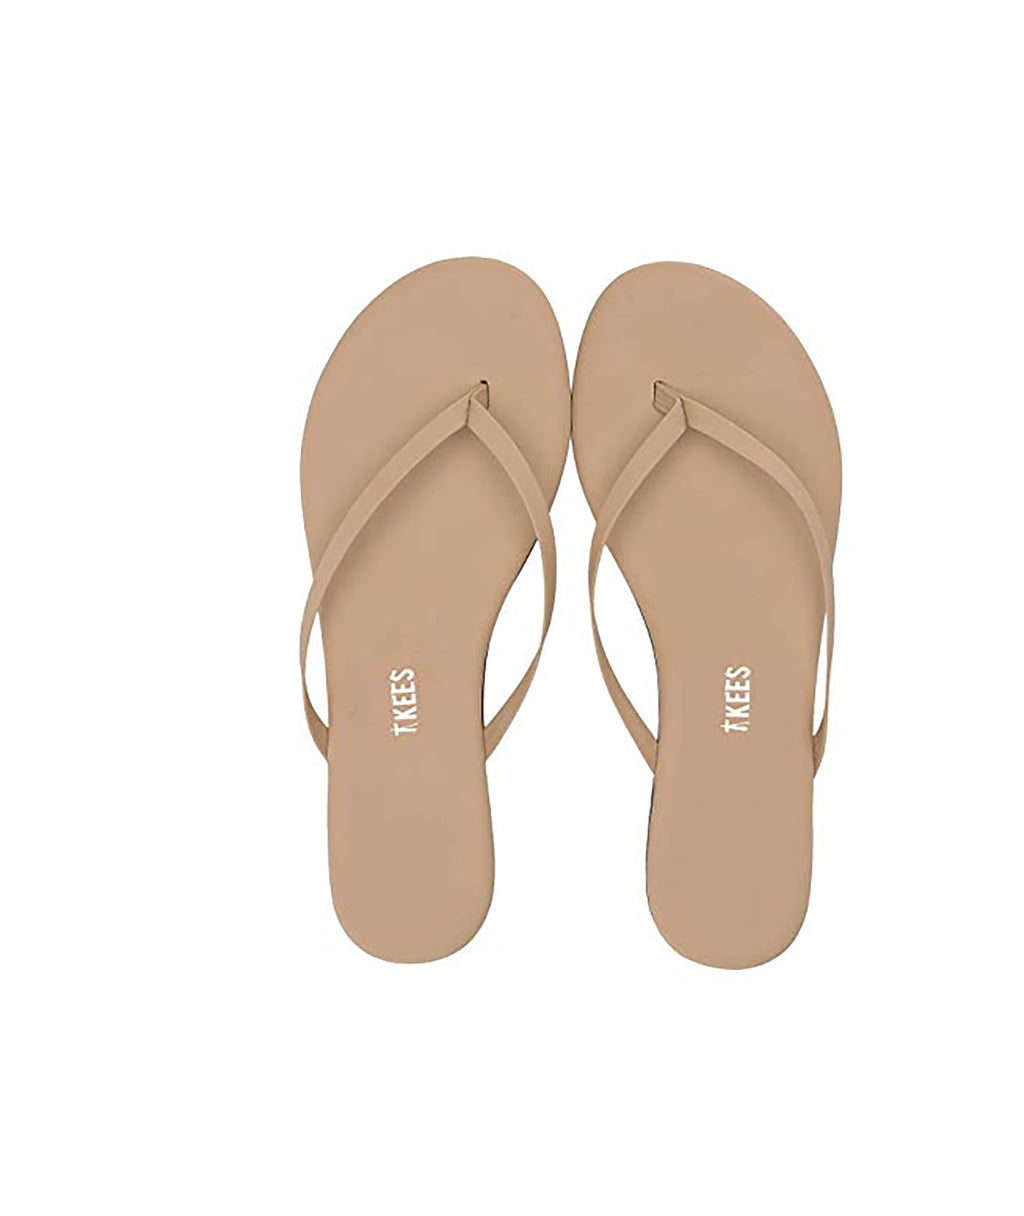 Tkees Women Flip-Flop Sun Kissed